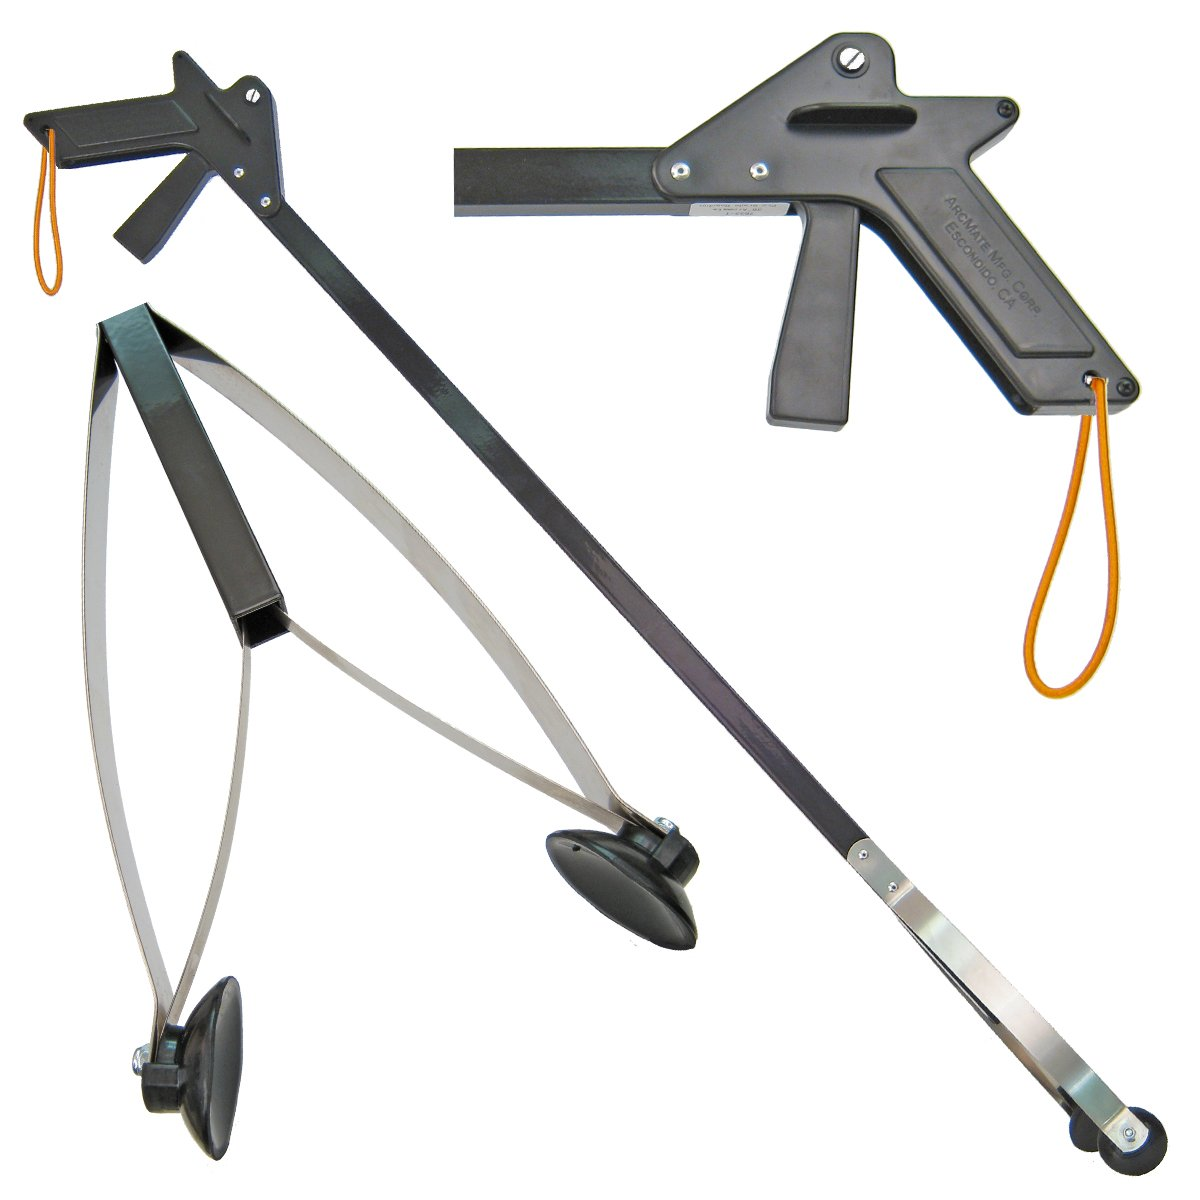 ArcMate KingTongs – Professional Grade Rubber Cup Reacher Grabber with Locking Grip and Larger Handle, Outdoor and Commercial Use, 4.25 Wide Jaw, 8lb. Pick Up Capacity, Black, 44 7849